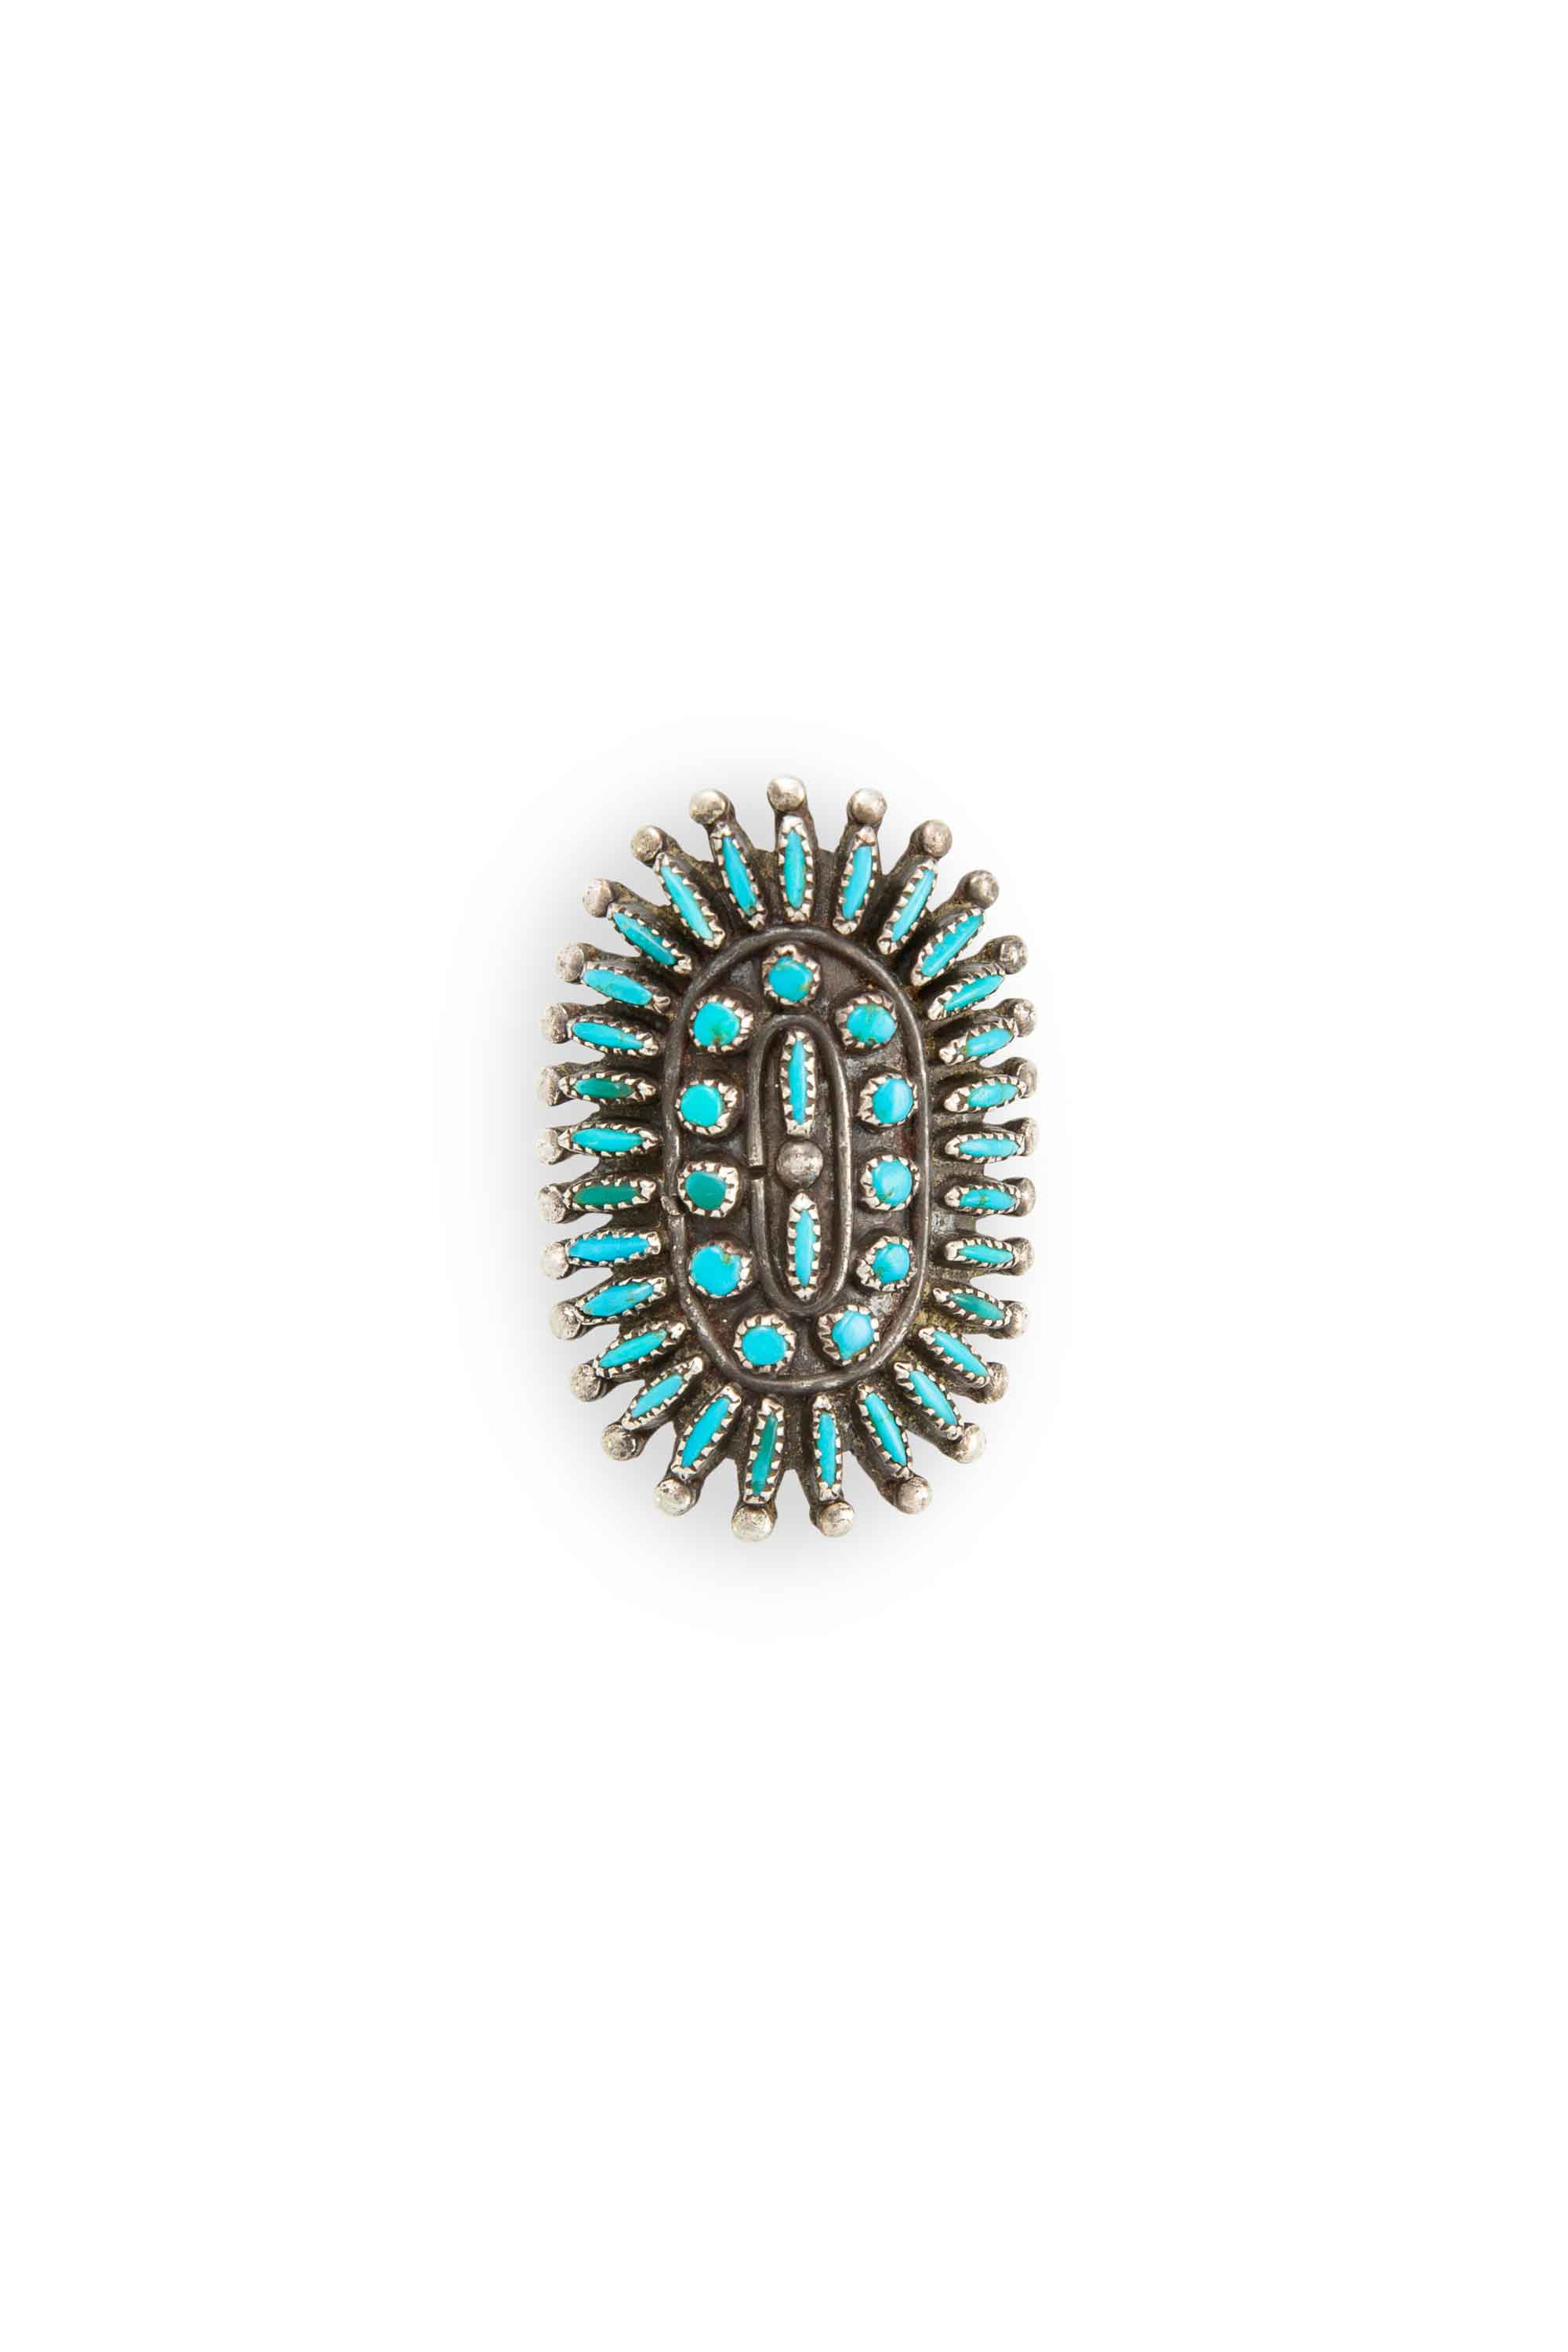 Ring, Turquoise, Cluster, Needlepoint, Vintage, 578